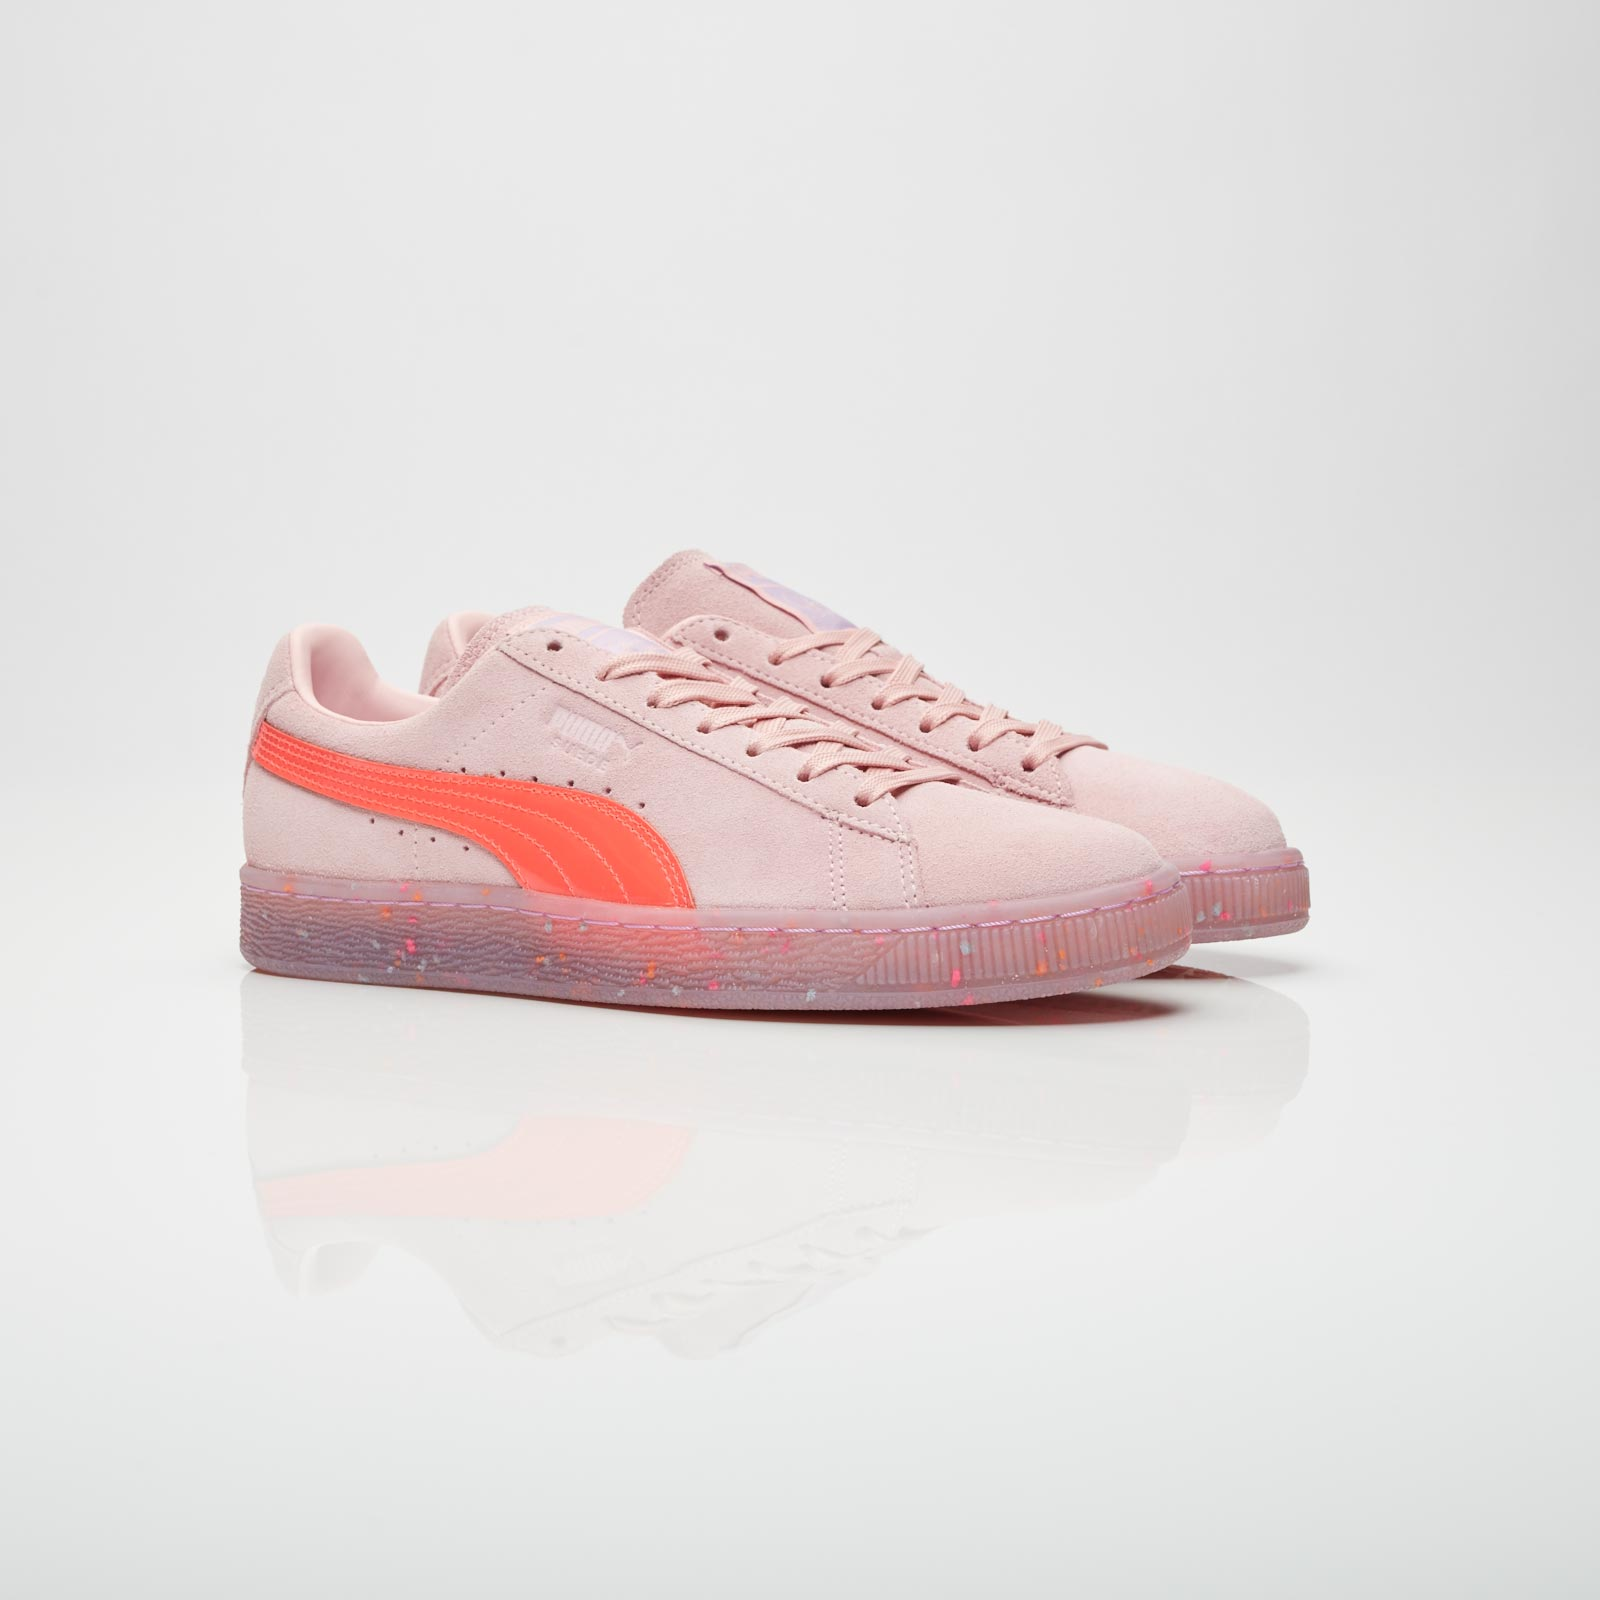 the best attitude 518f5 ede32 Puma Suede Wns x Sophia Webster - 364737-03 - Sneakersnstuff ...